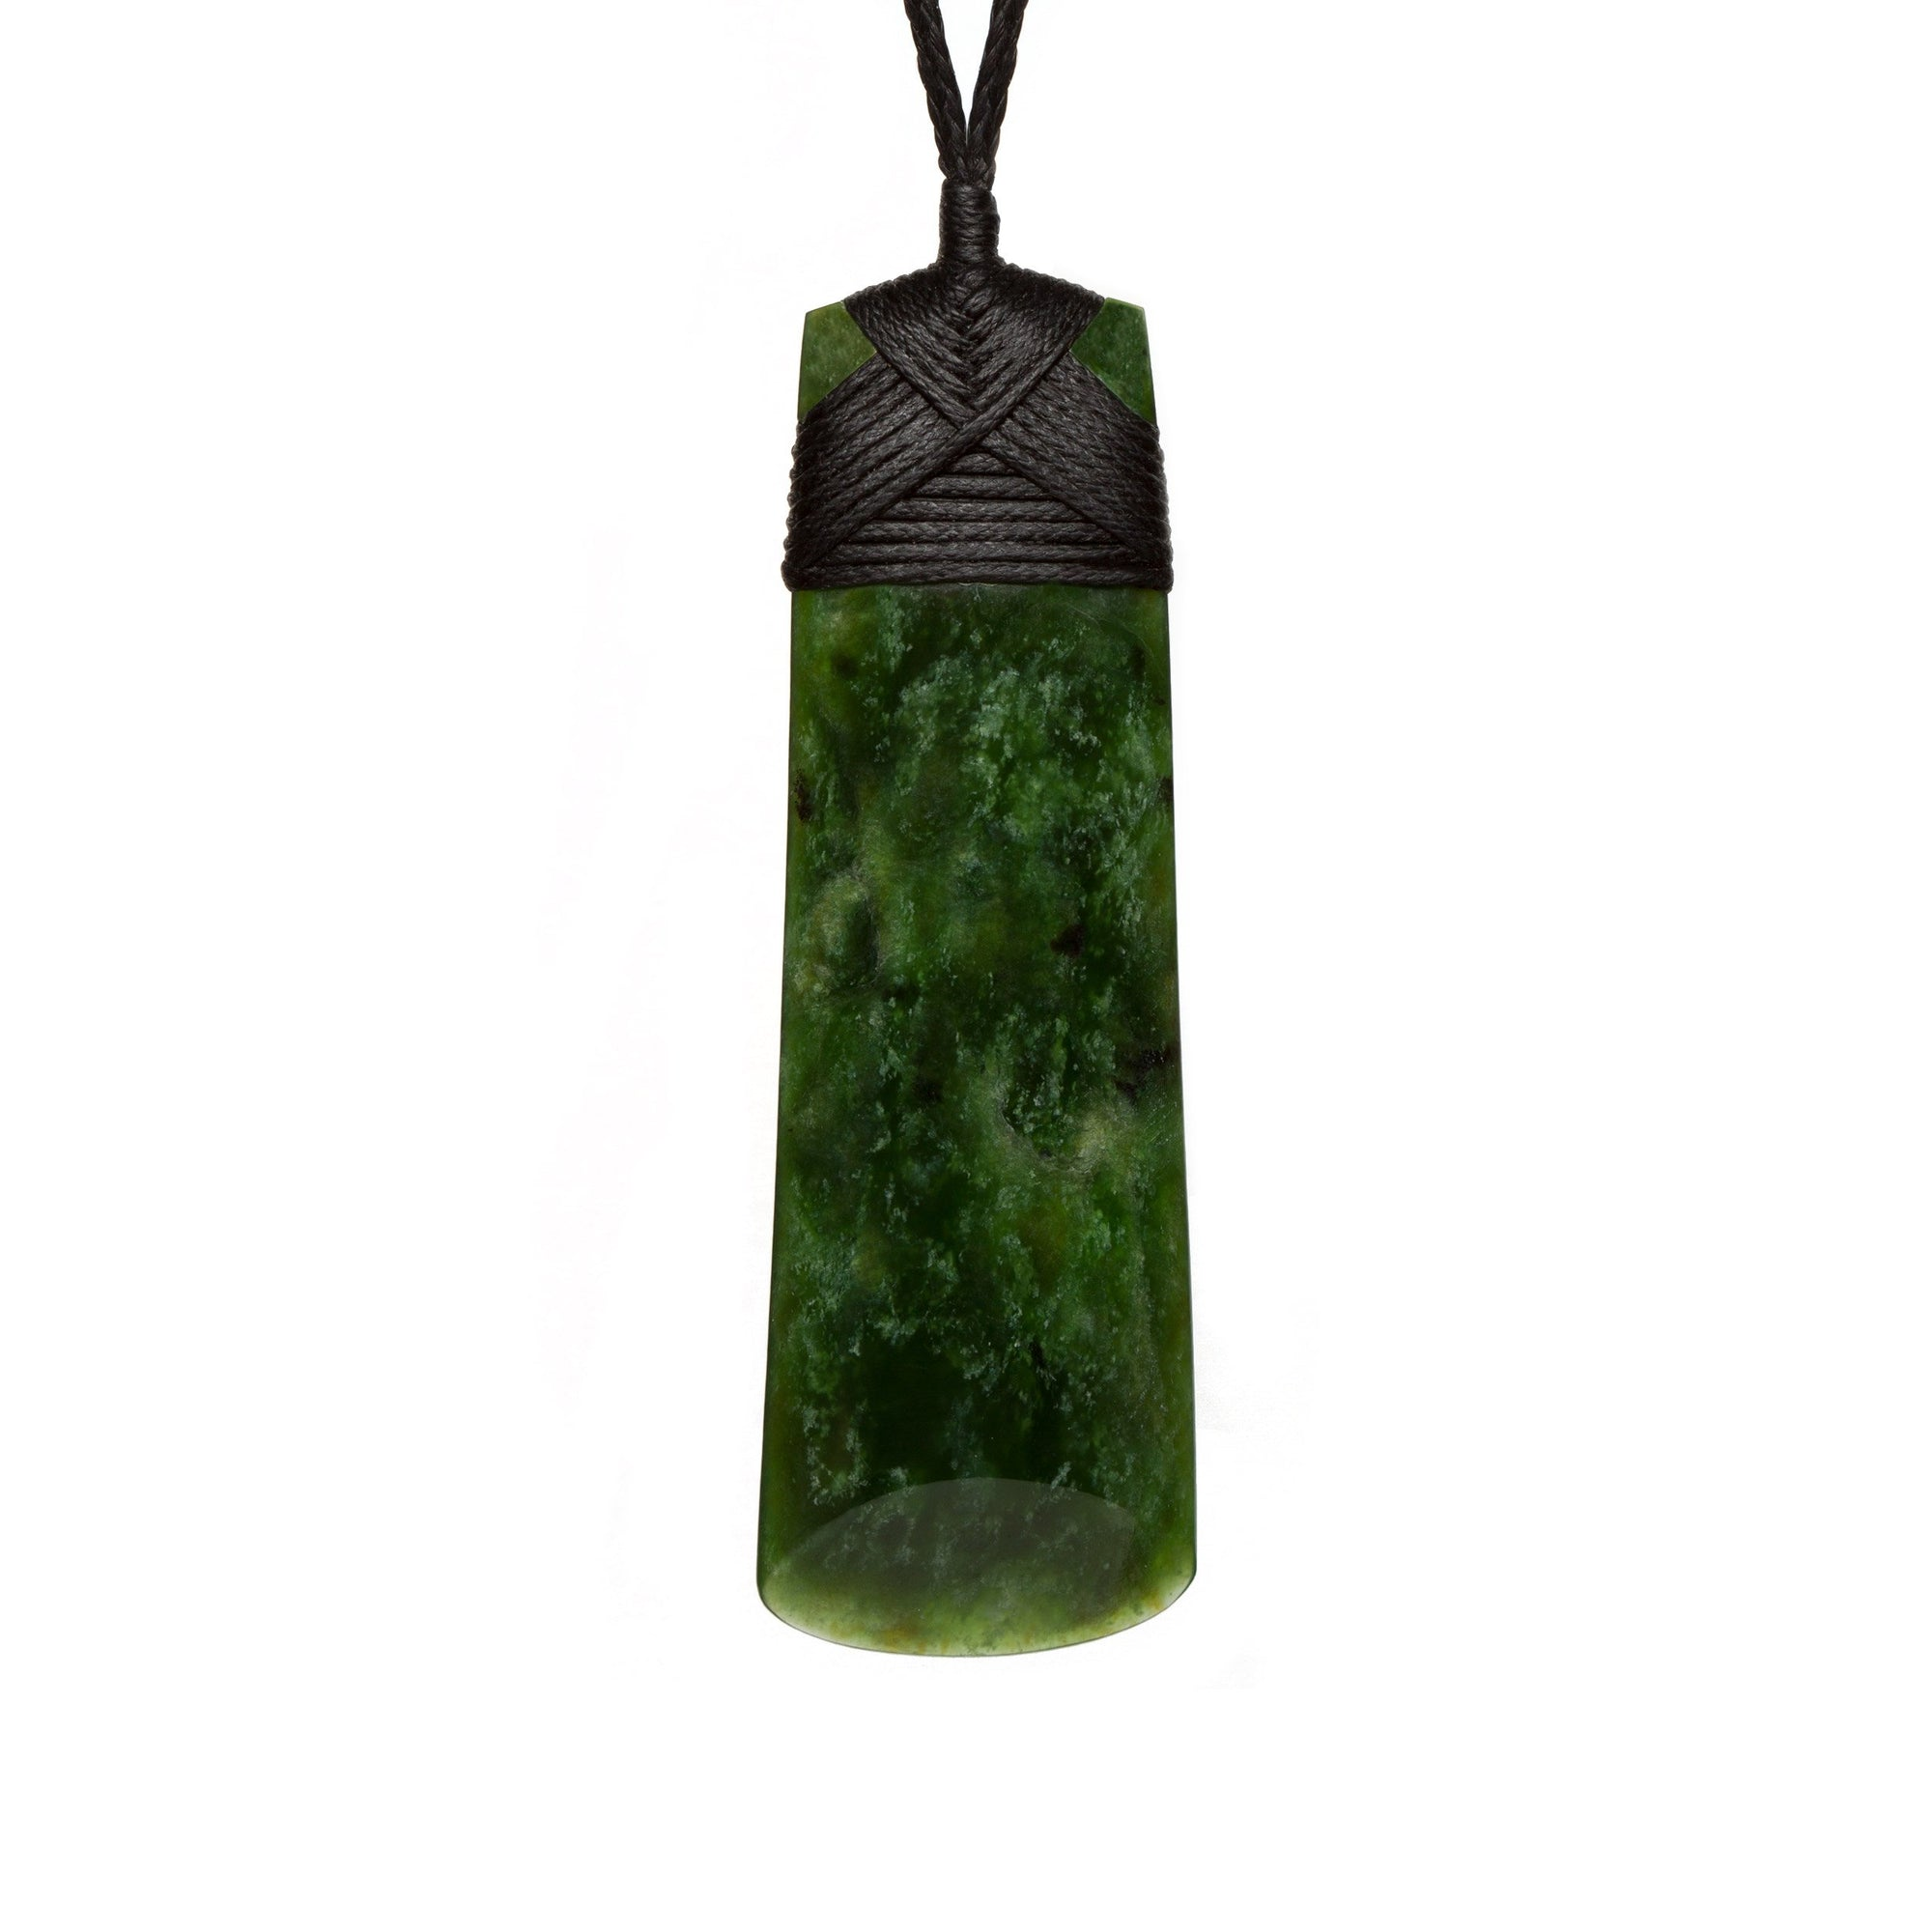 New Zealand Pounamu Long Slender Toki